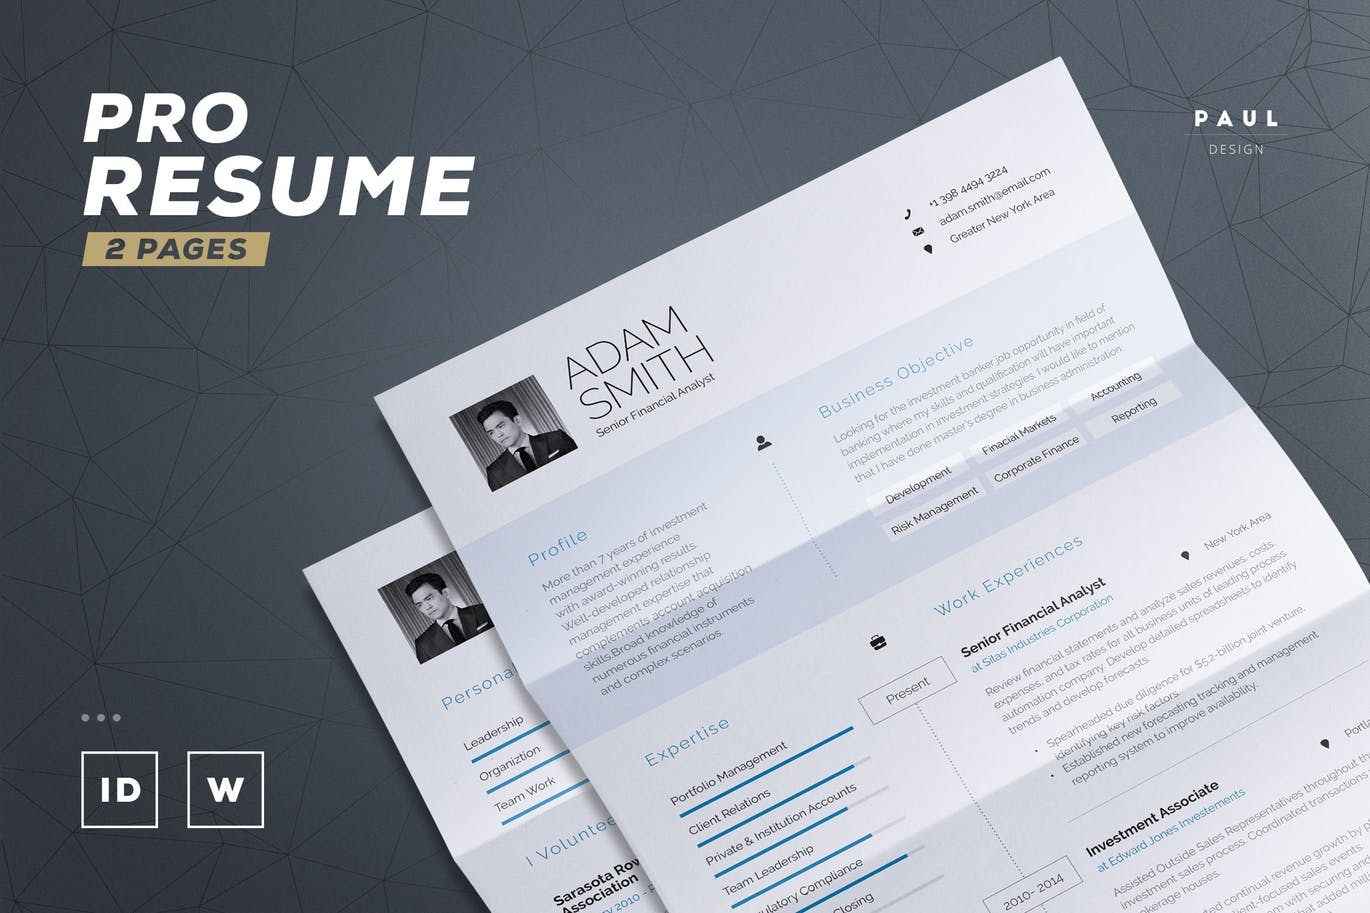 50 best cv resume templates of 2018 design shack this is a resume template with a professional design it comes in both word and indesign formats the template has 2 pages and a cover letter yelopaper Images